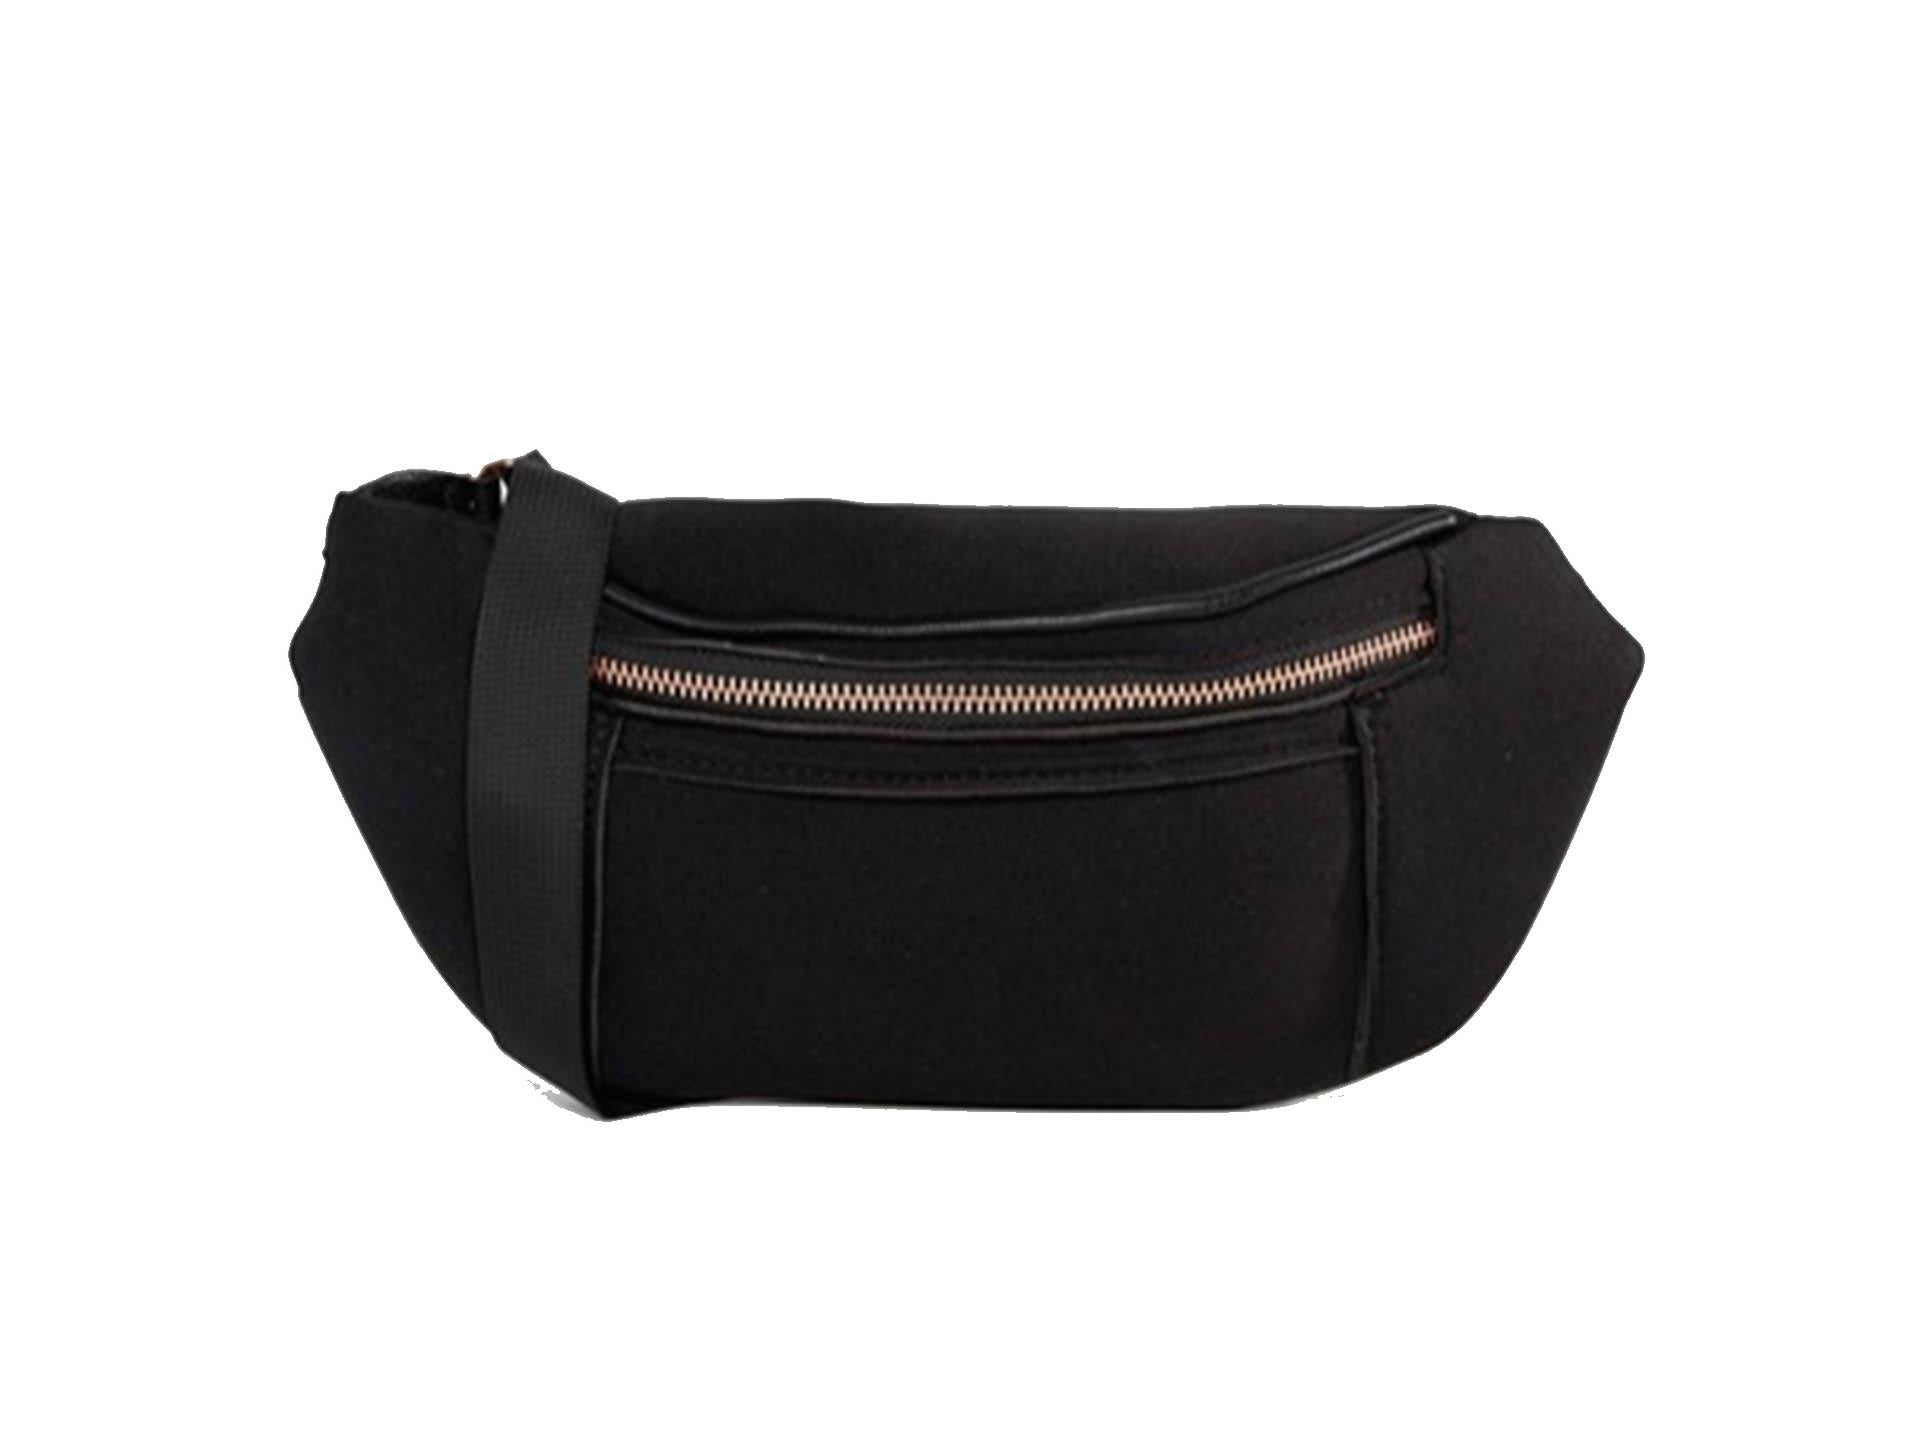 f6c651420323 Best bum bag: Choose from carriers that are fit for festivals ...